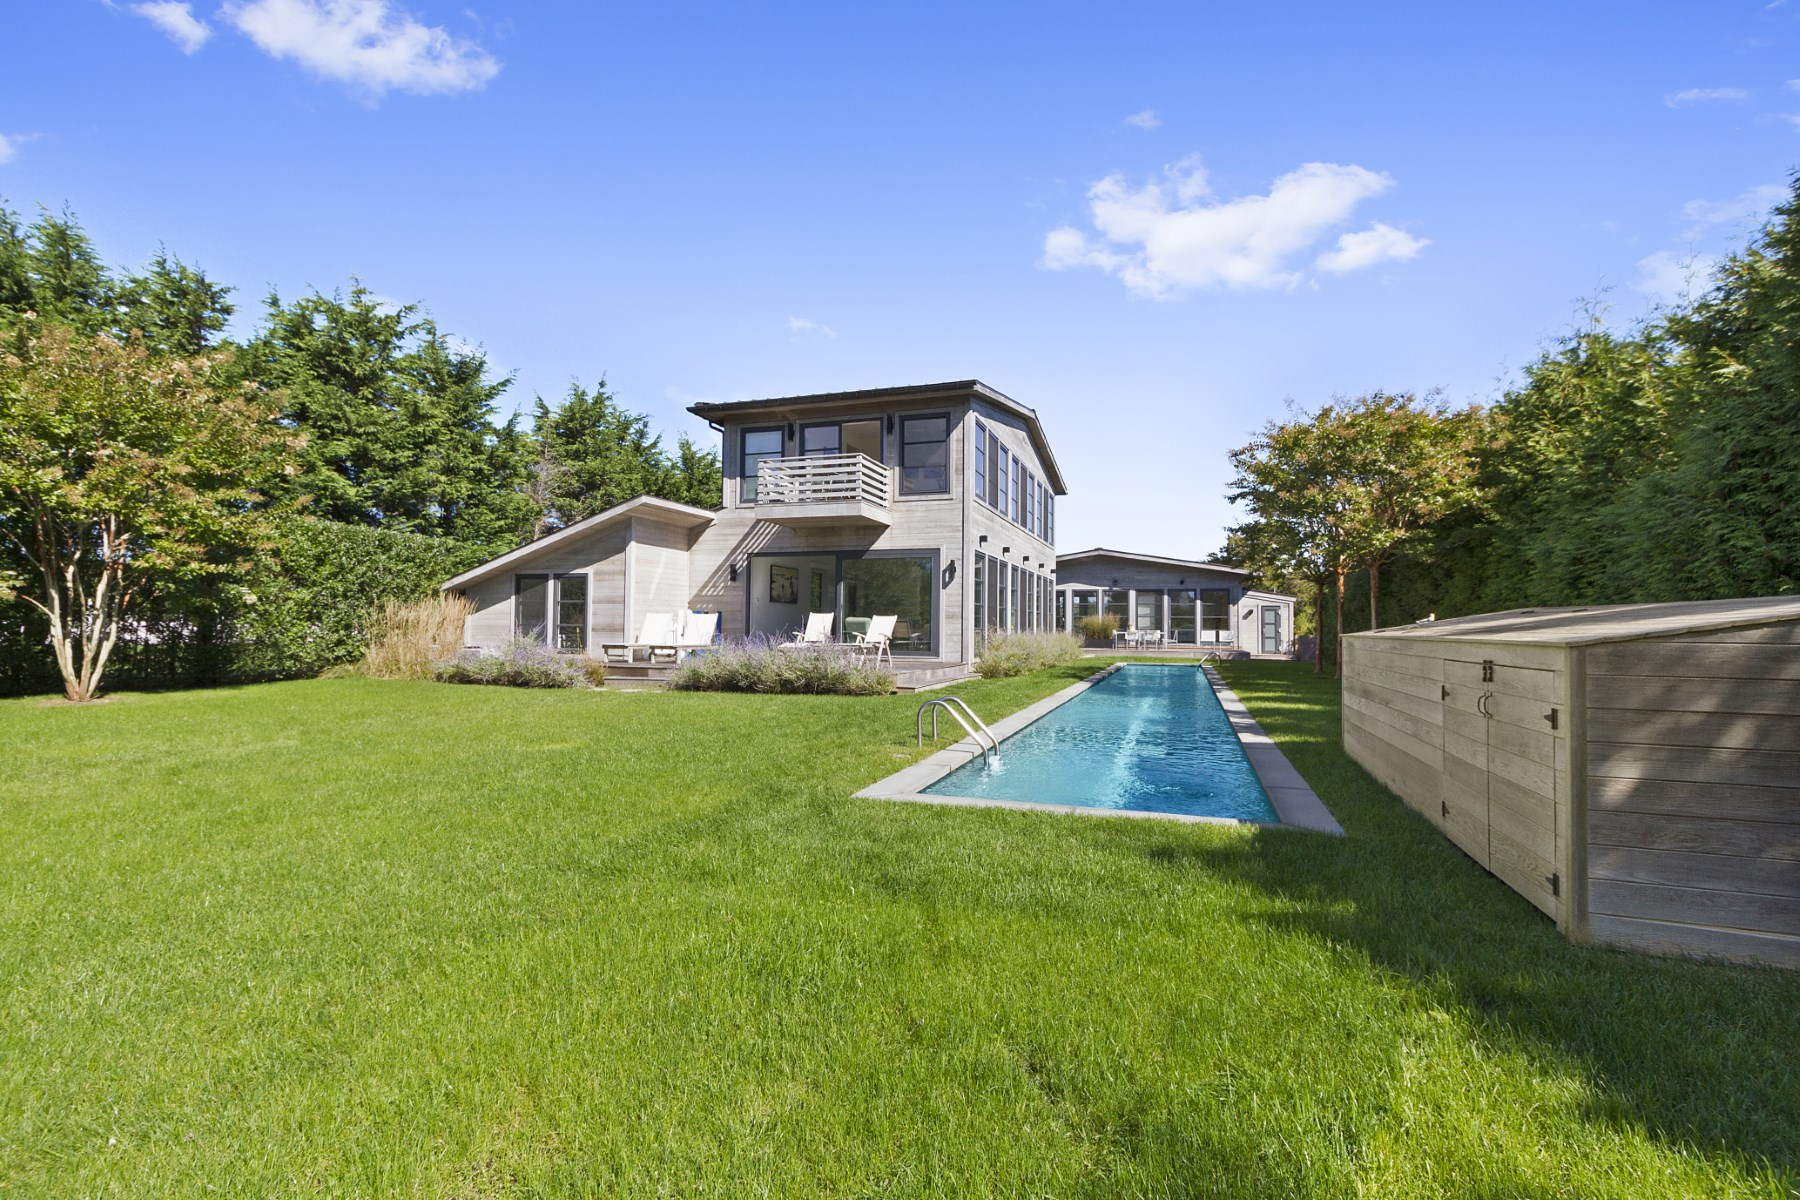 Moradia para Venda às Modern Compound, Immediate Ocean Access 108 Town Line Road Sagaponack South, Sagaponack, Nova York, 11962 Estados Unidos